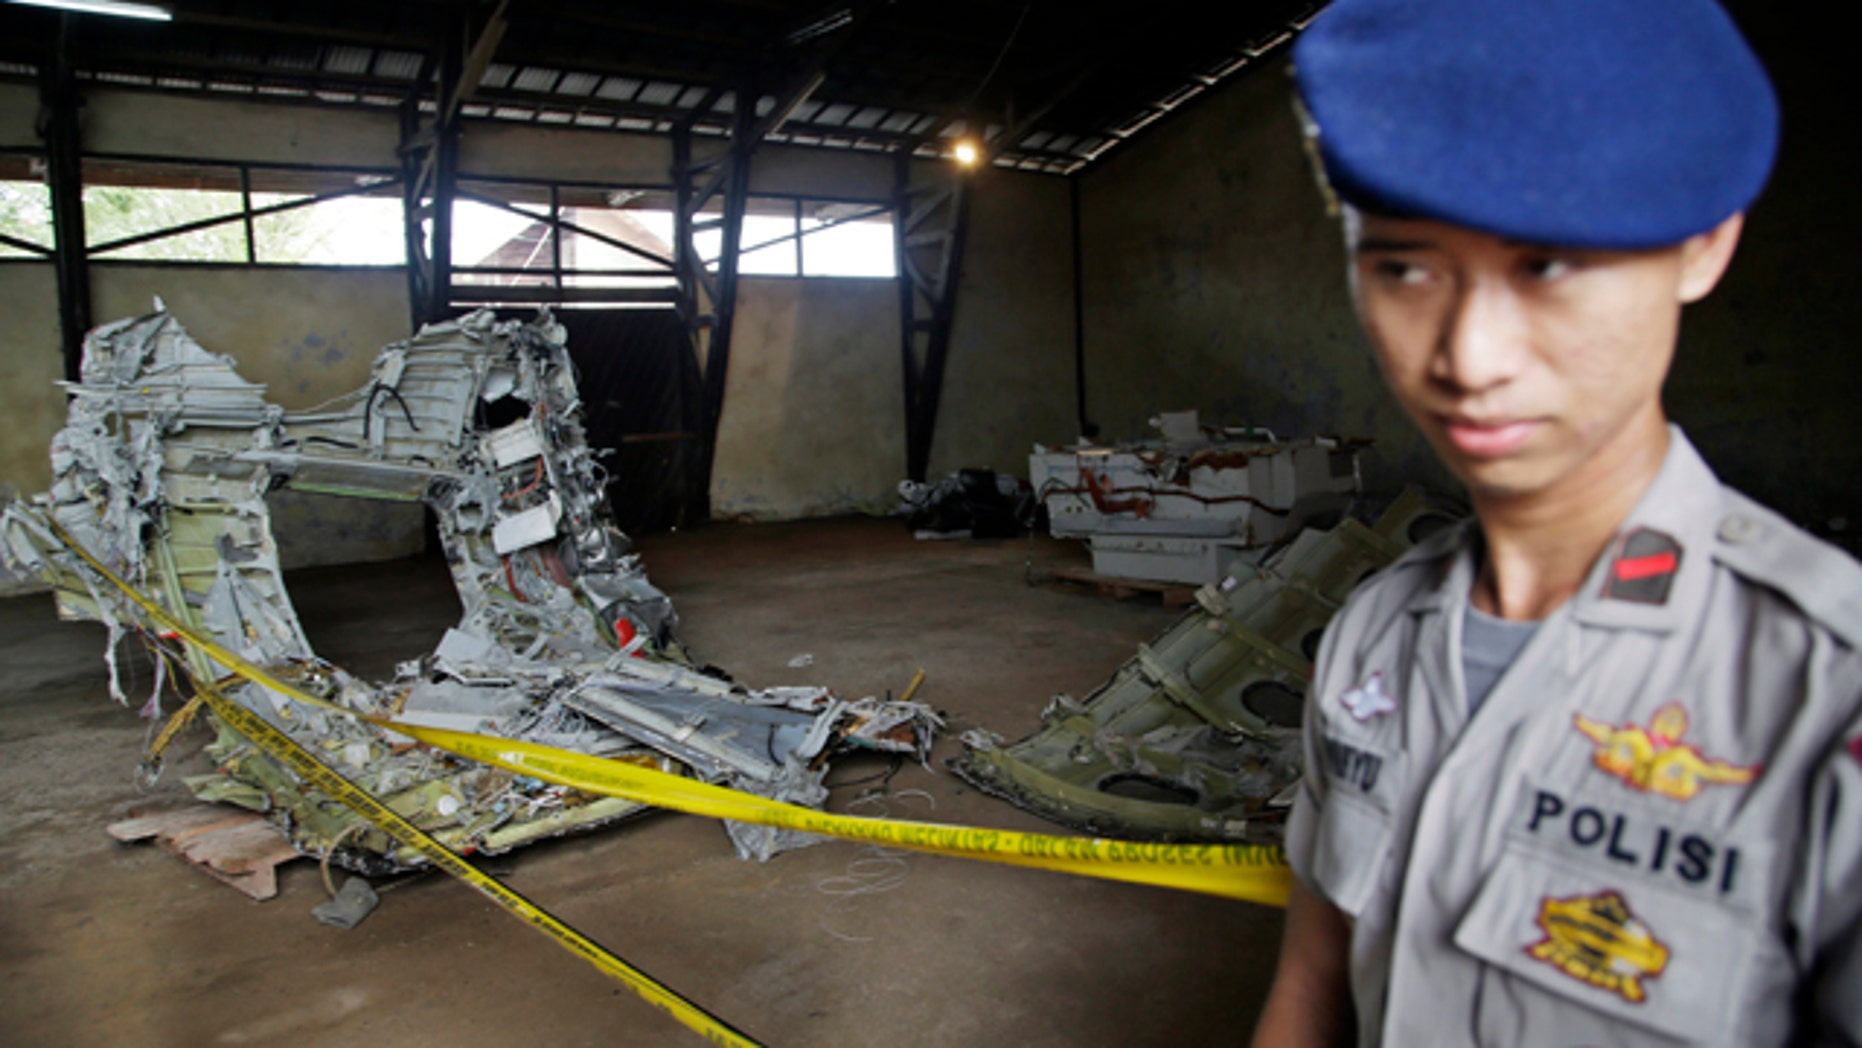 Jan. 19, 2015: An Indonesian police officer stands guard near the wreckage of AirAsia Flight 8501 at a warehouse at Kumai port in Pangkalan Bun.  The plane disappeared Dec. 28, 2014 en route from Surabaya, Indonesia, to Singapore. (AP Photo/Achmad Ibrahim)